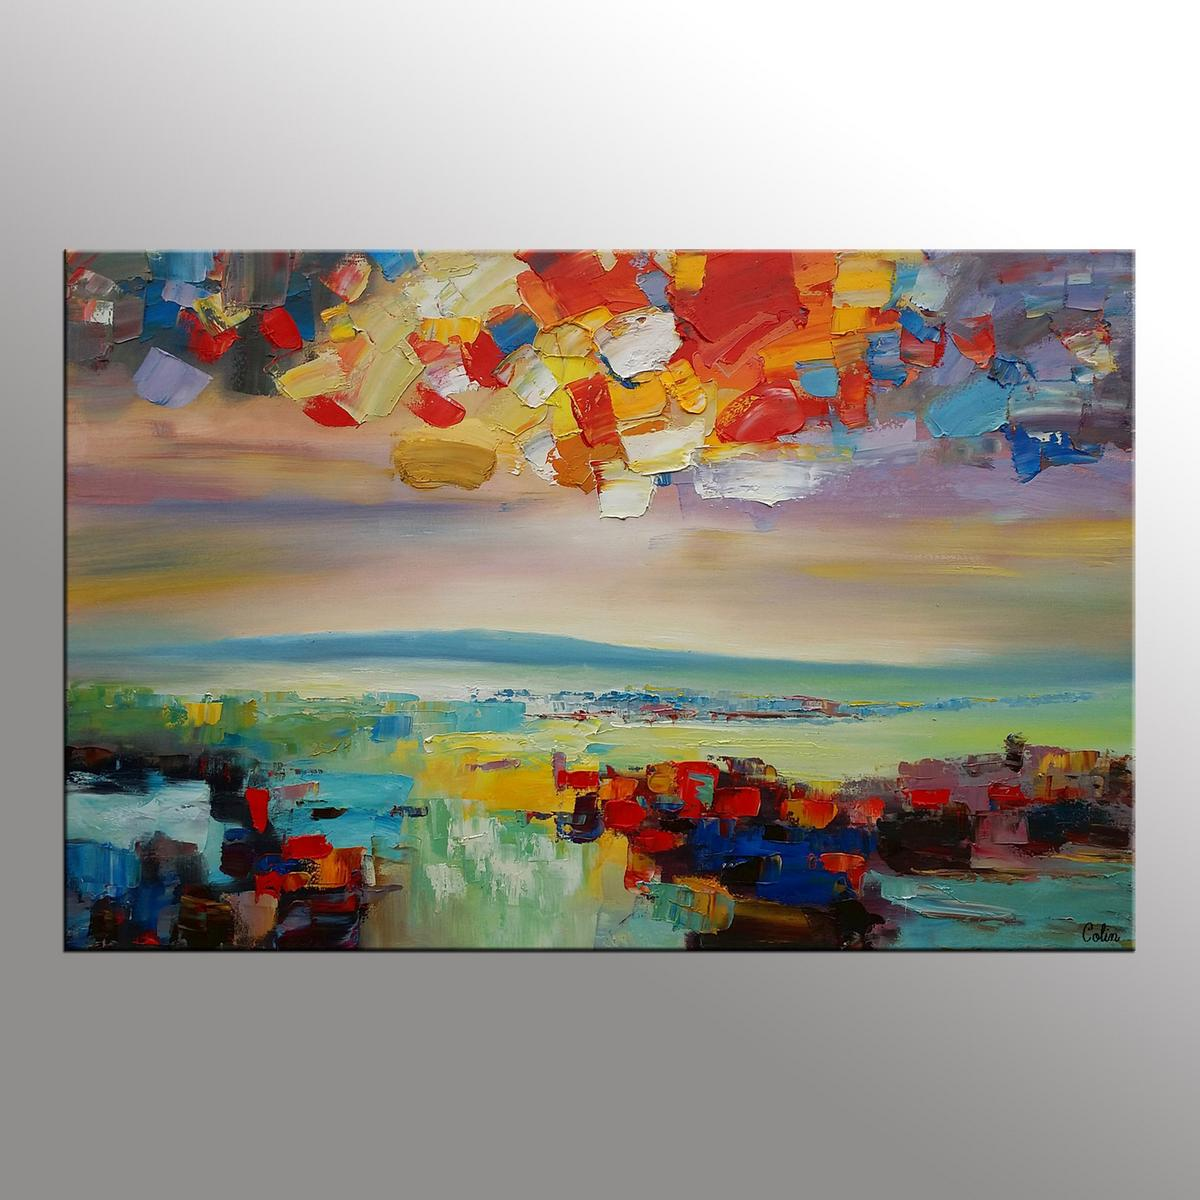 Original Wall Art, Abstract Landscape Painting, Large Oil Painting, Canvas Art, Wall Art, Original Artwork, Canvas Painting, 352